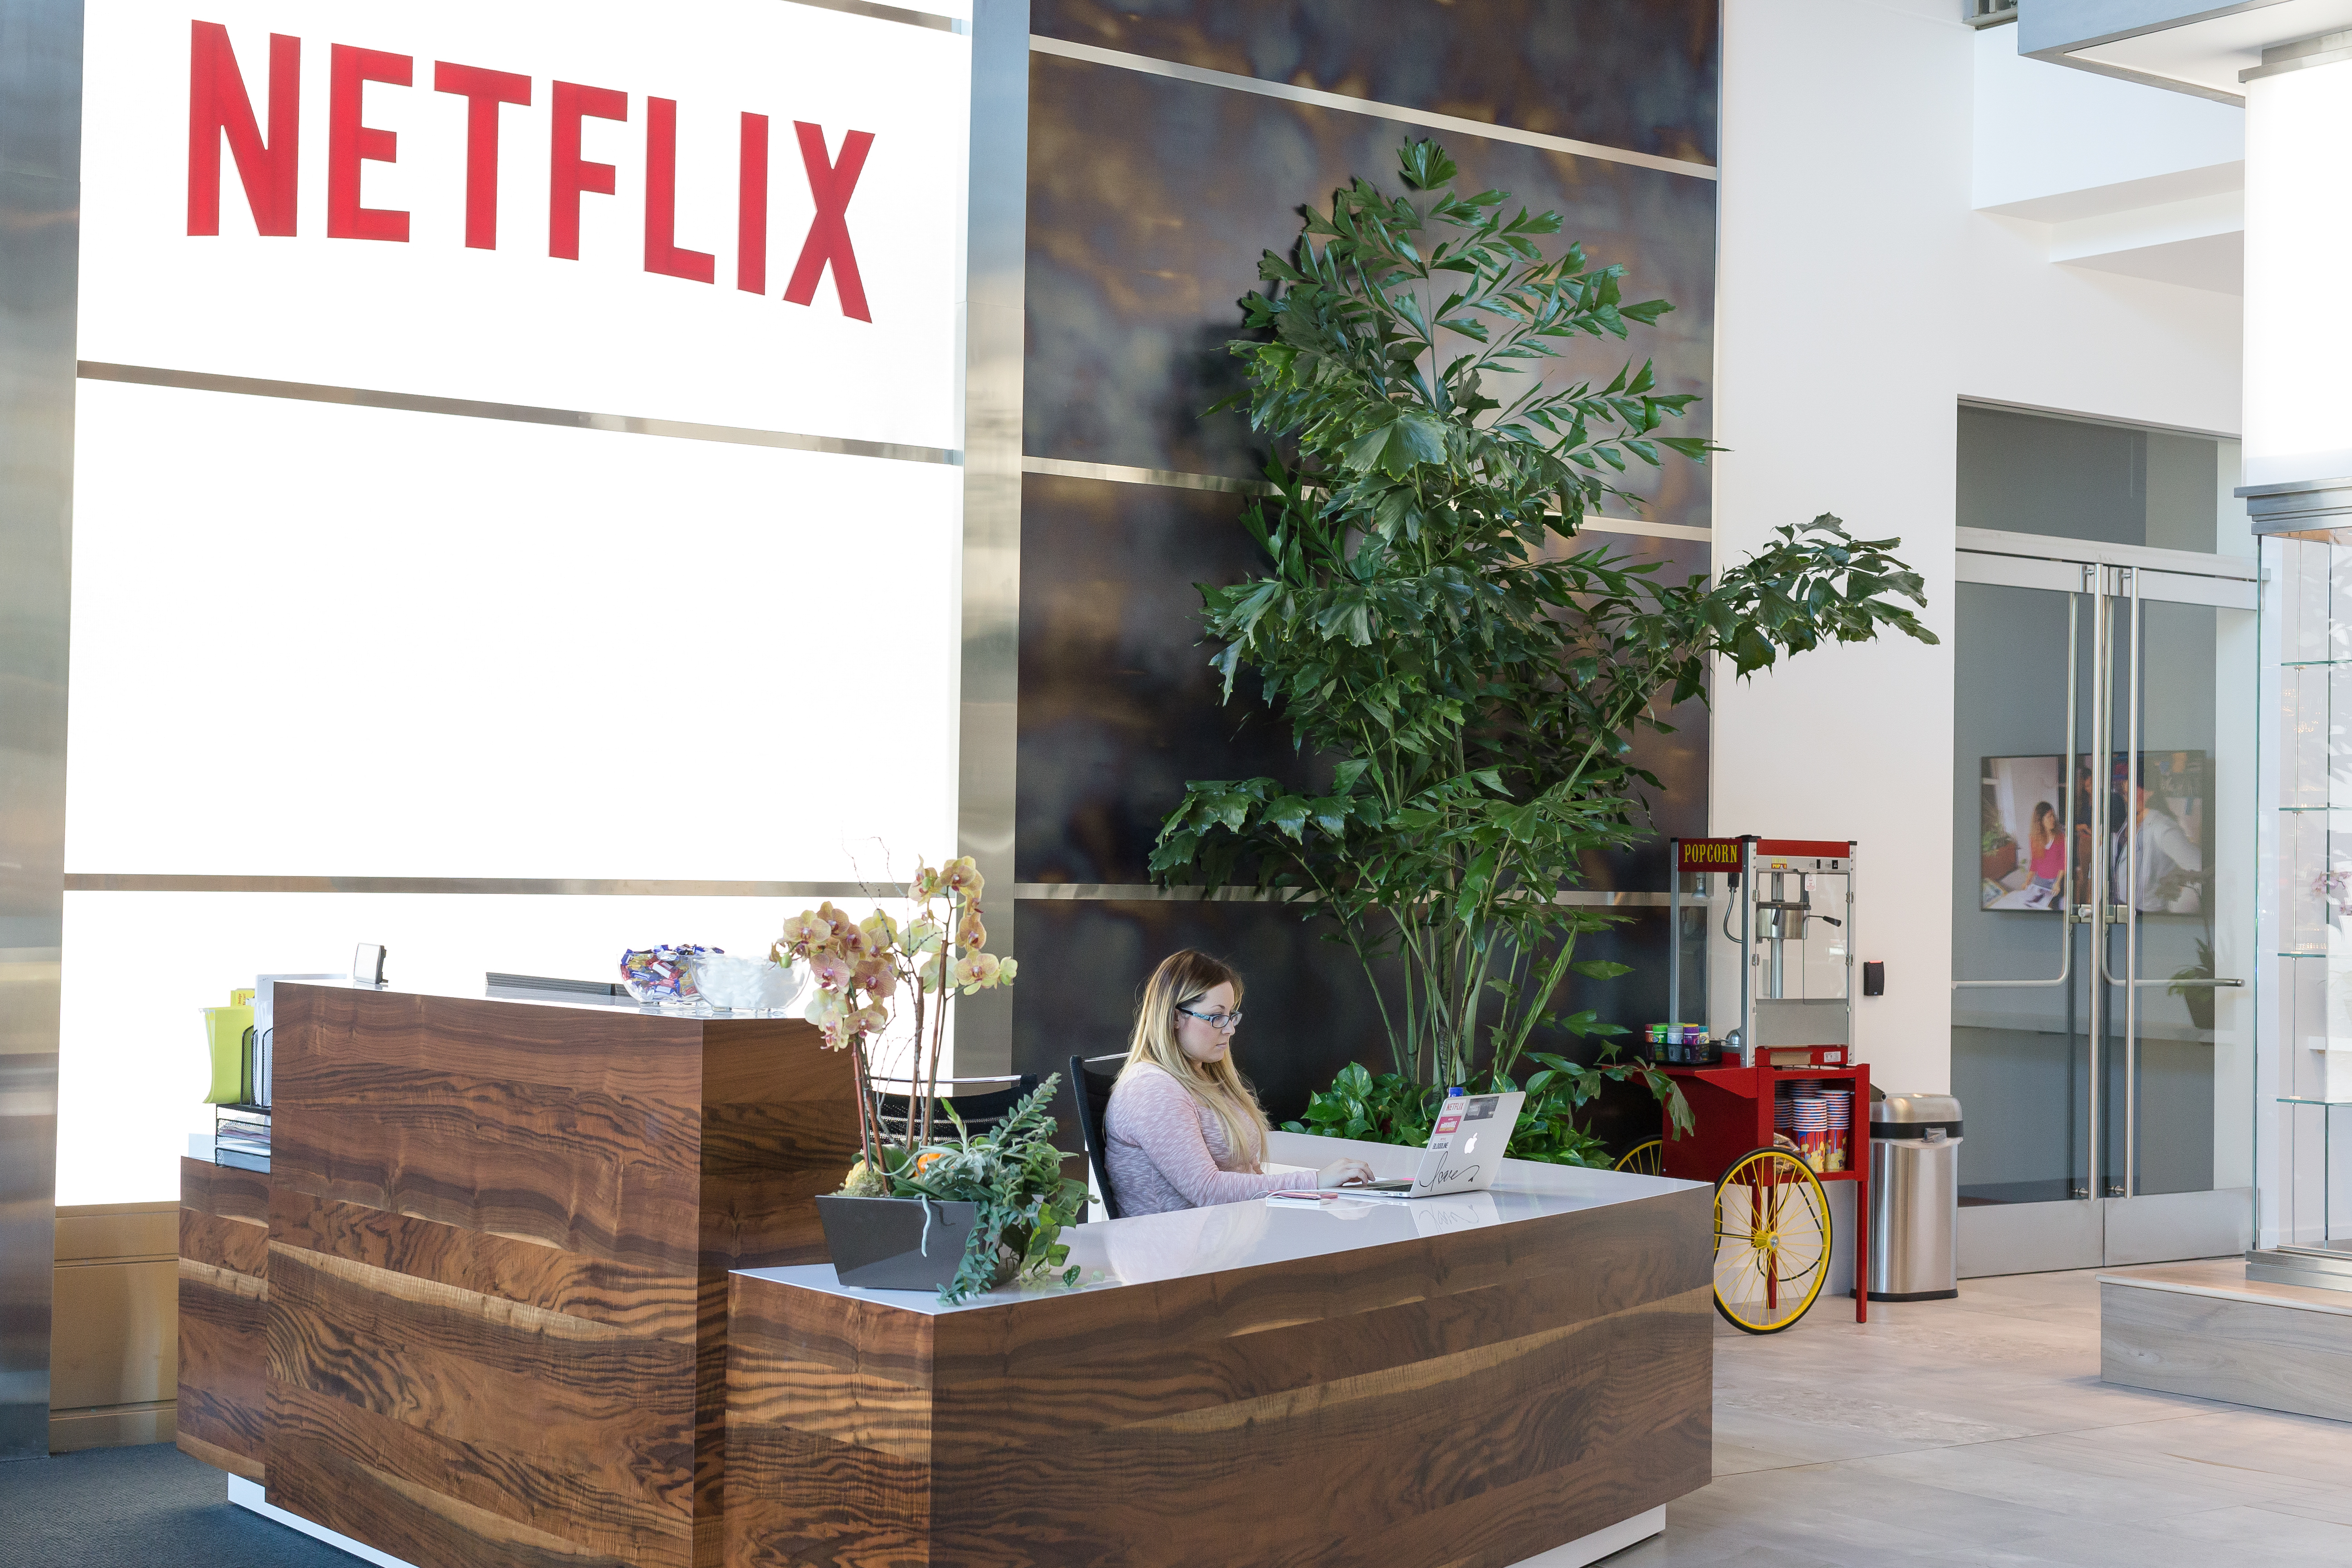 Netflix adds record 6.74 million subscribers but stock tanks on weak forecast